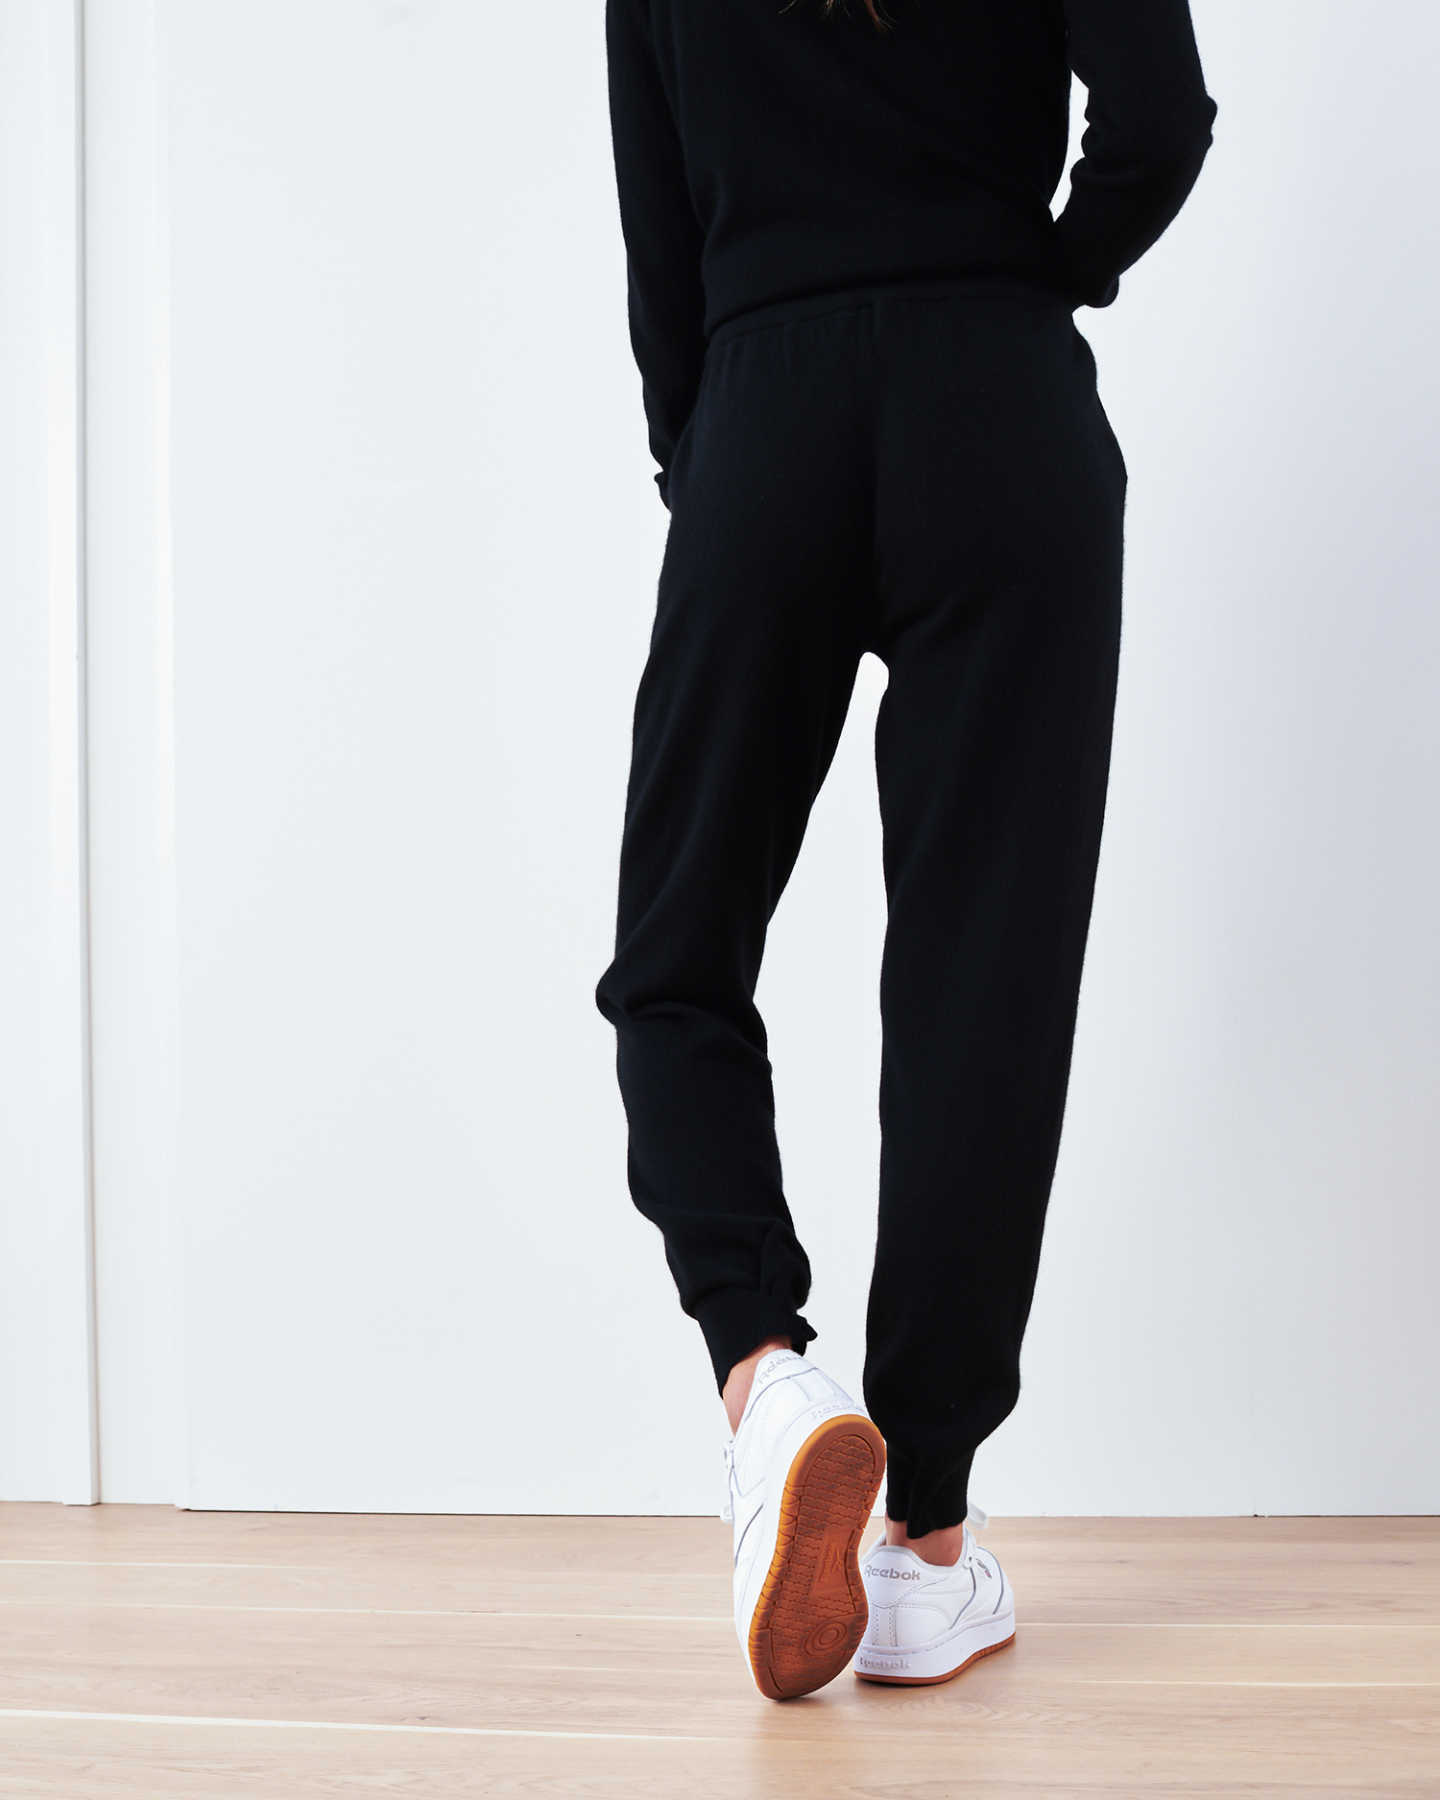 Woman wearing black cashmere sweatpants & cashmere joggers from behind